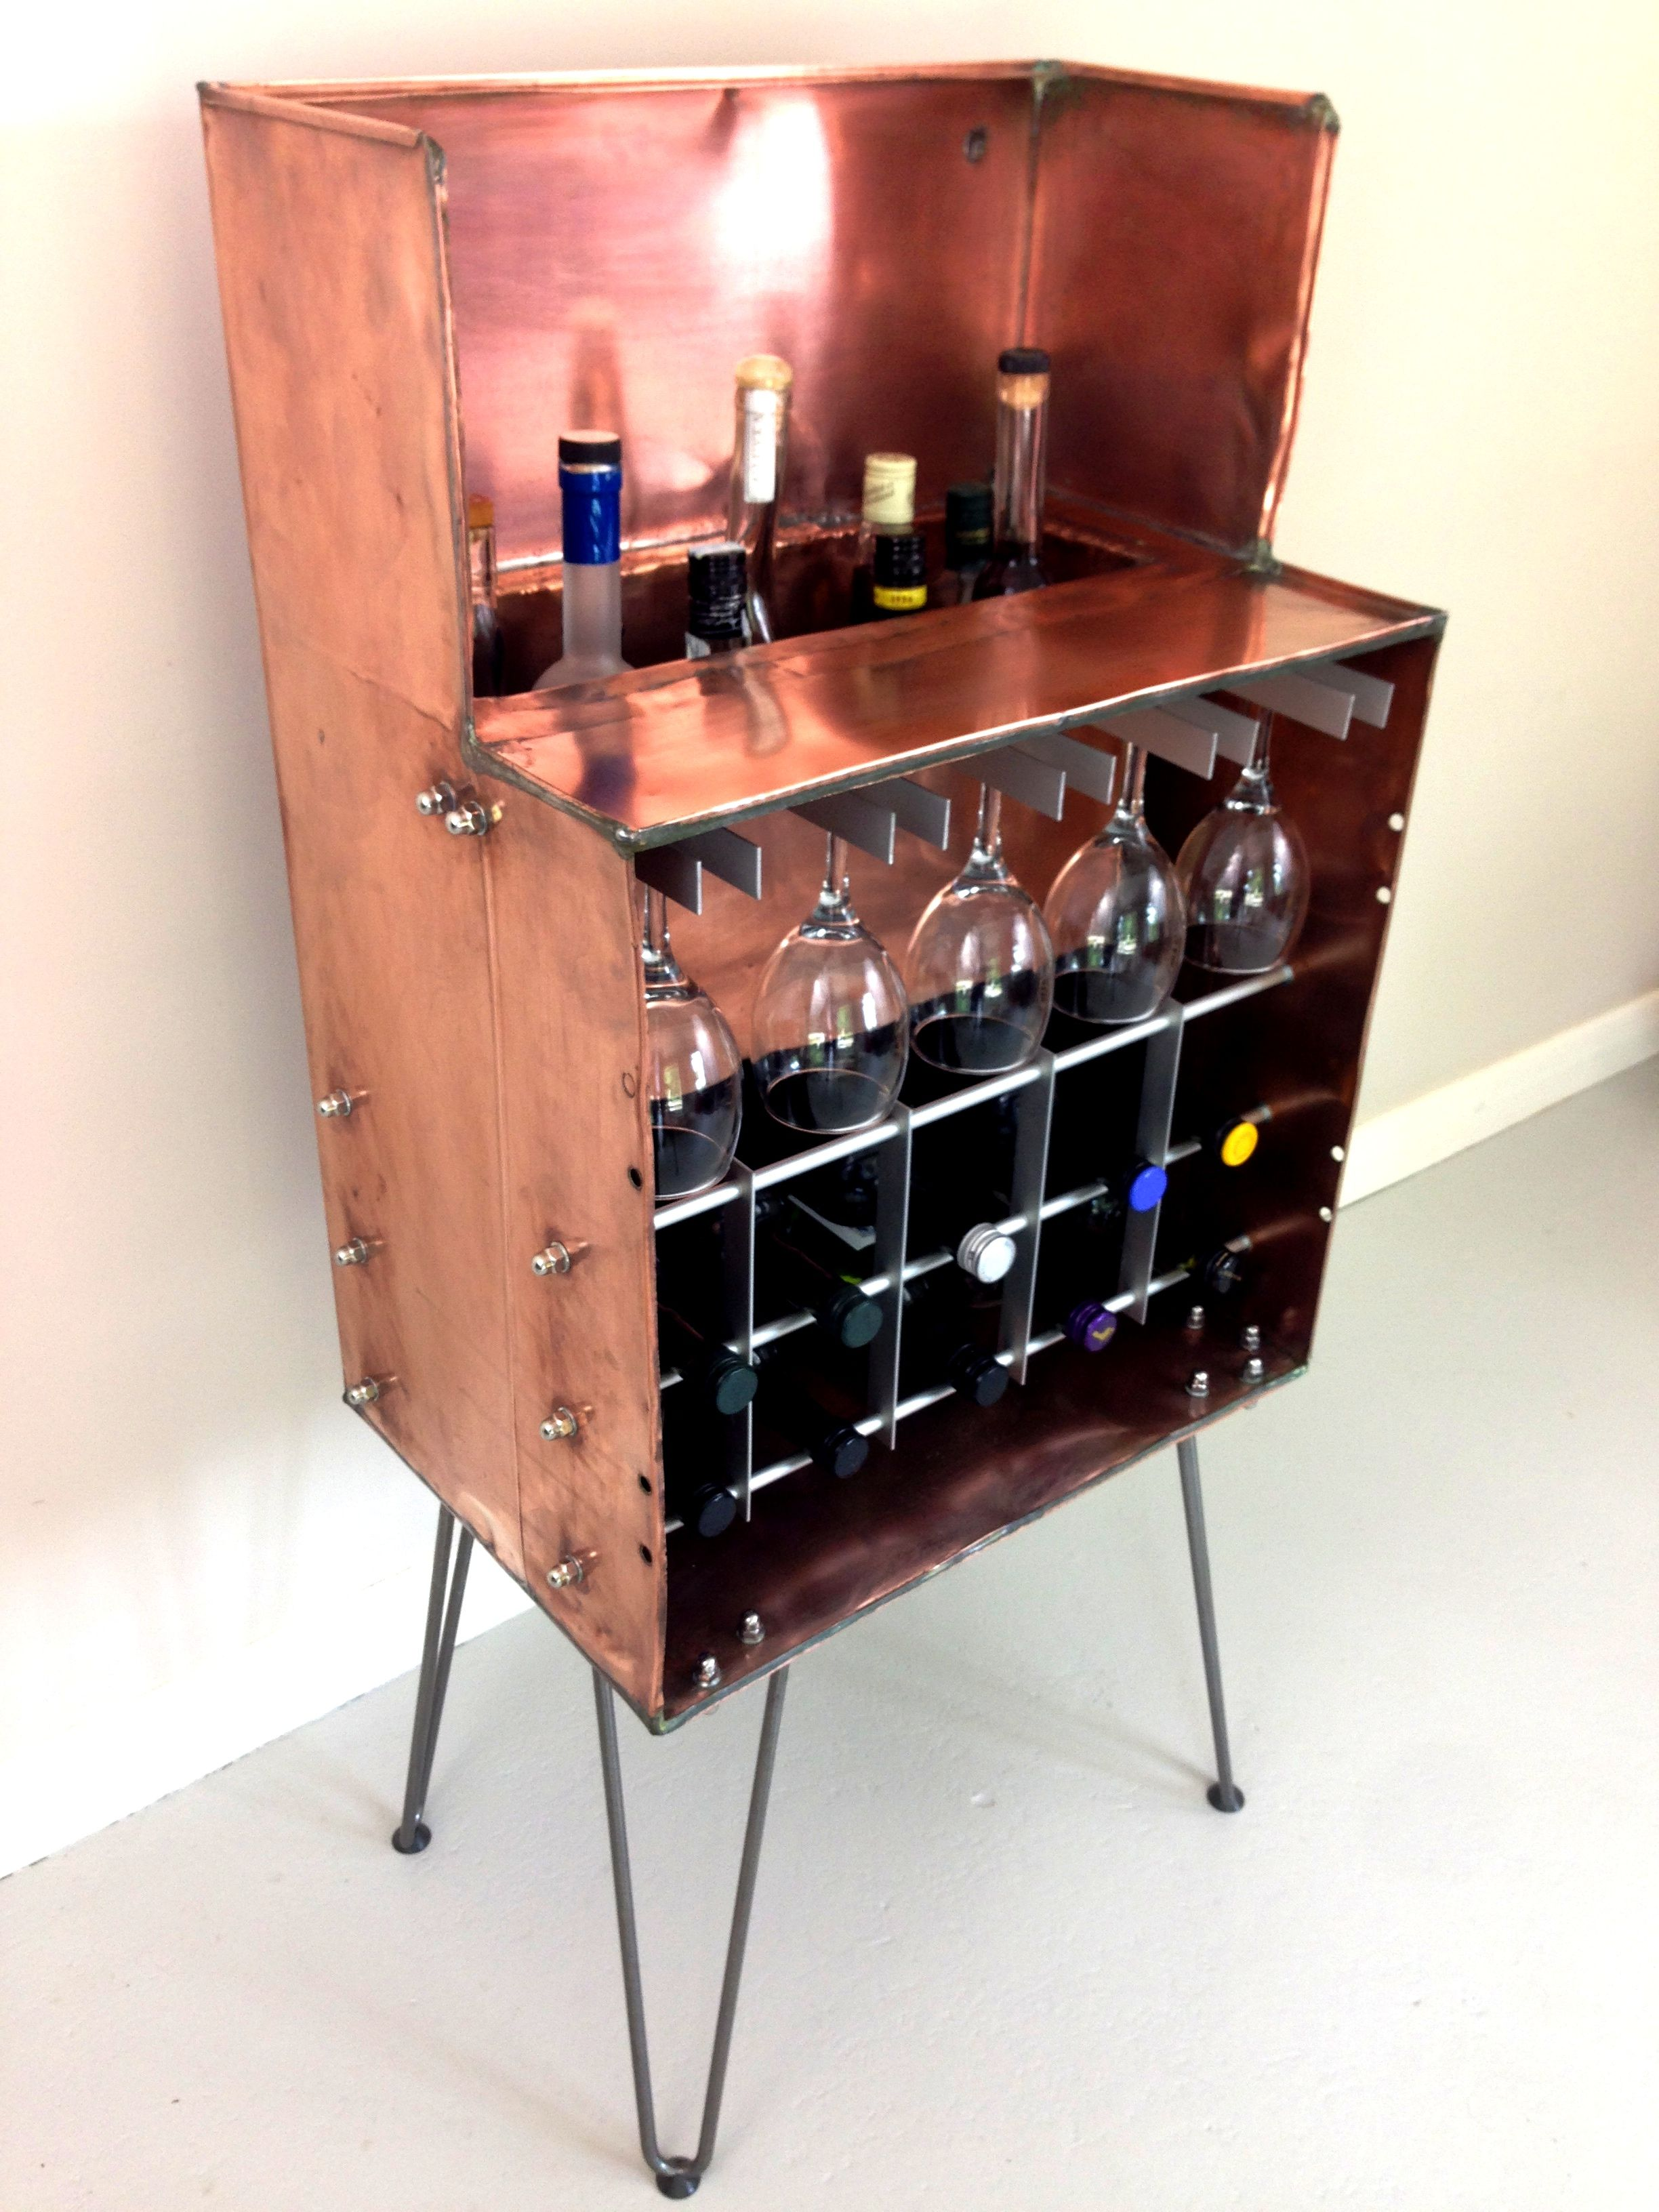 A sneak peek at our latest piece of upcycling! A drinks cabinet made from an old copper water tank! What do you think?!